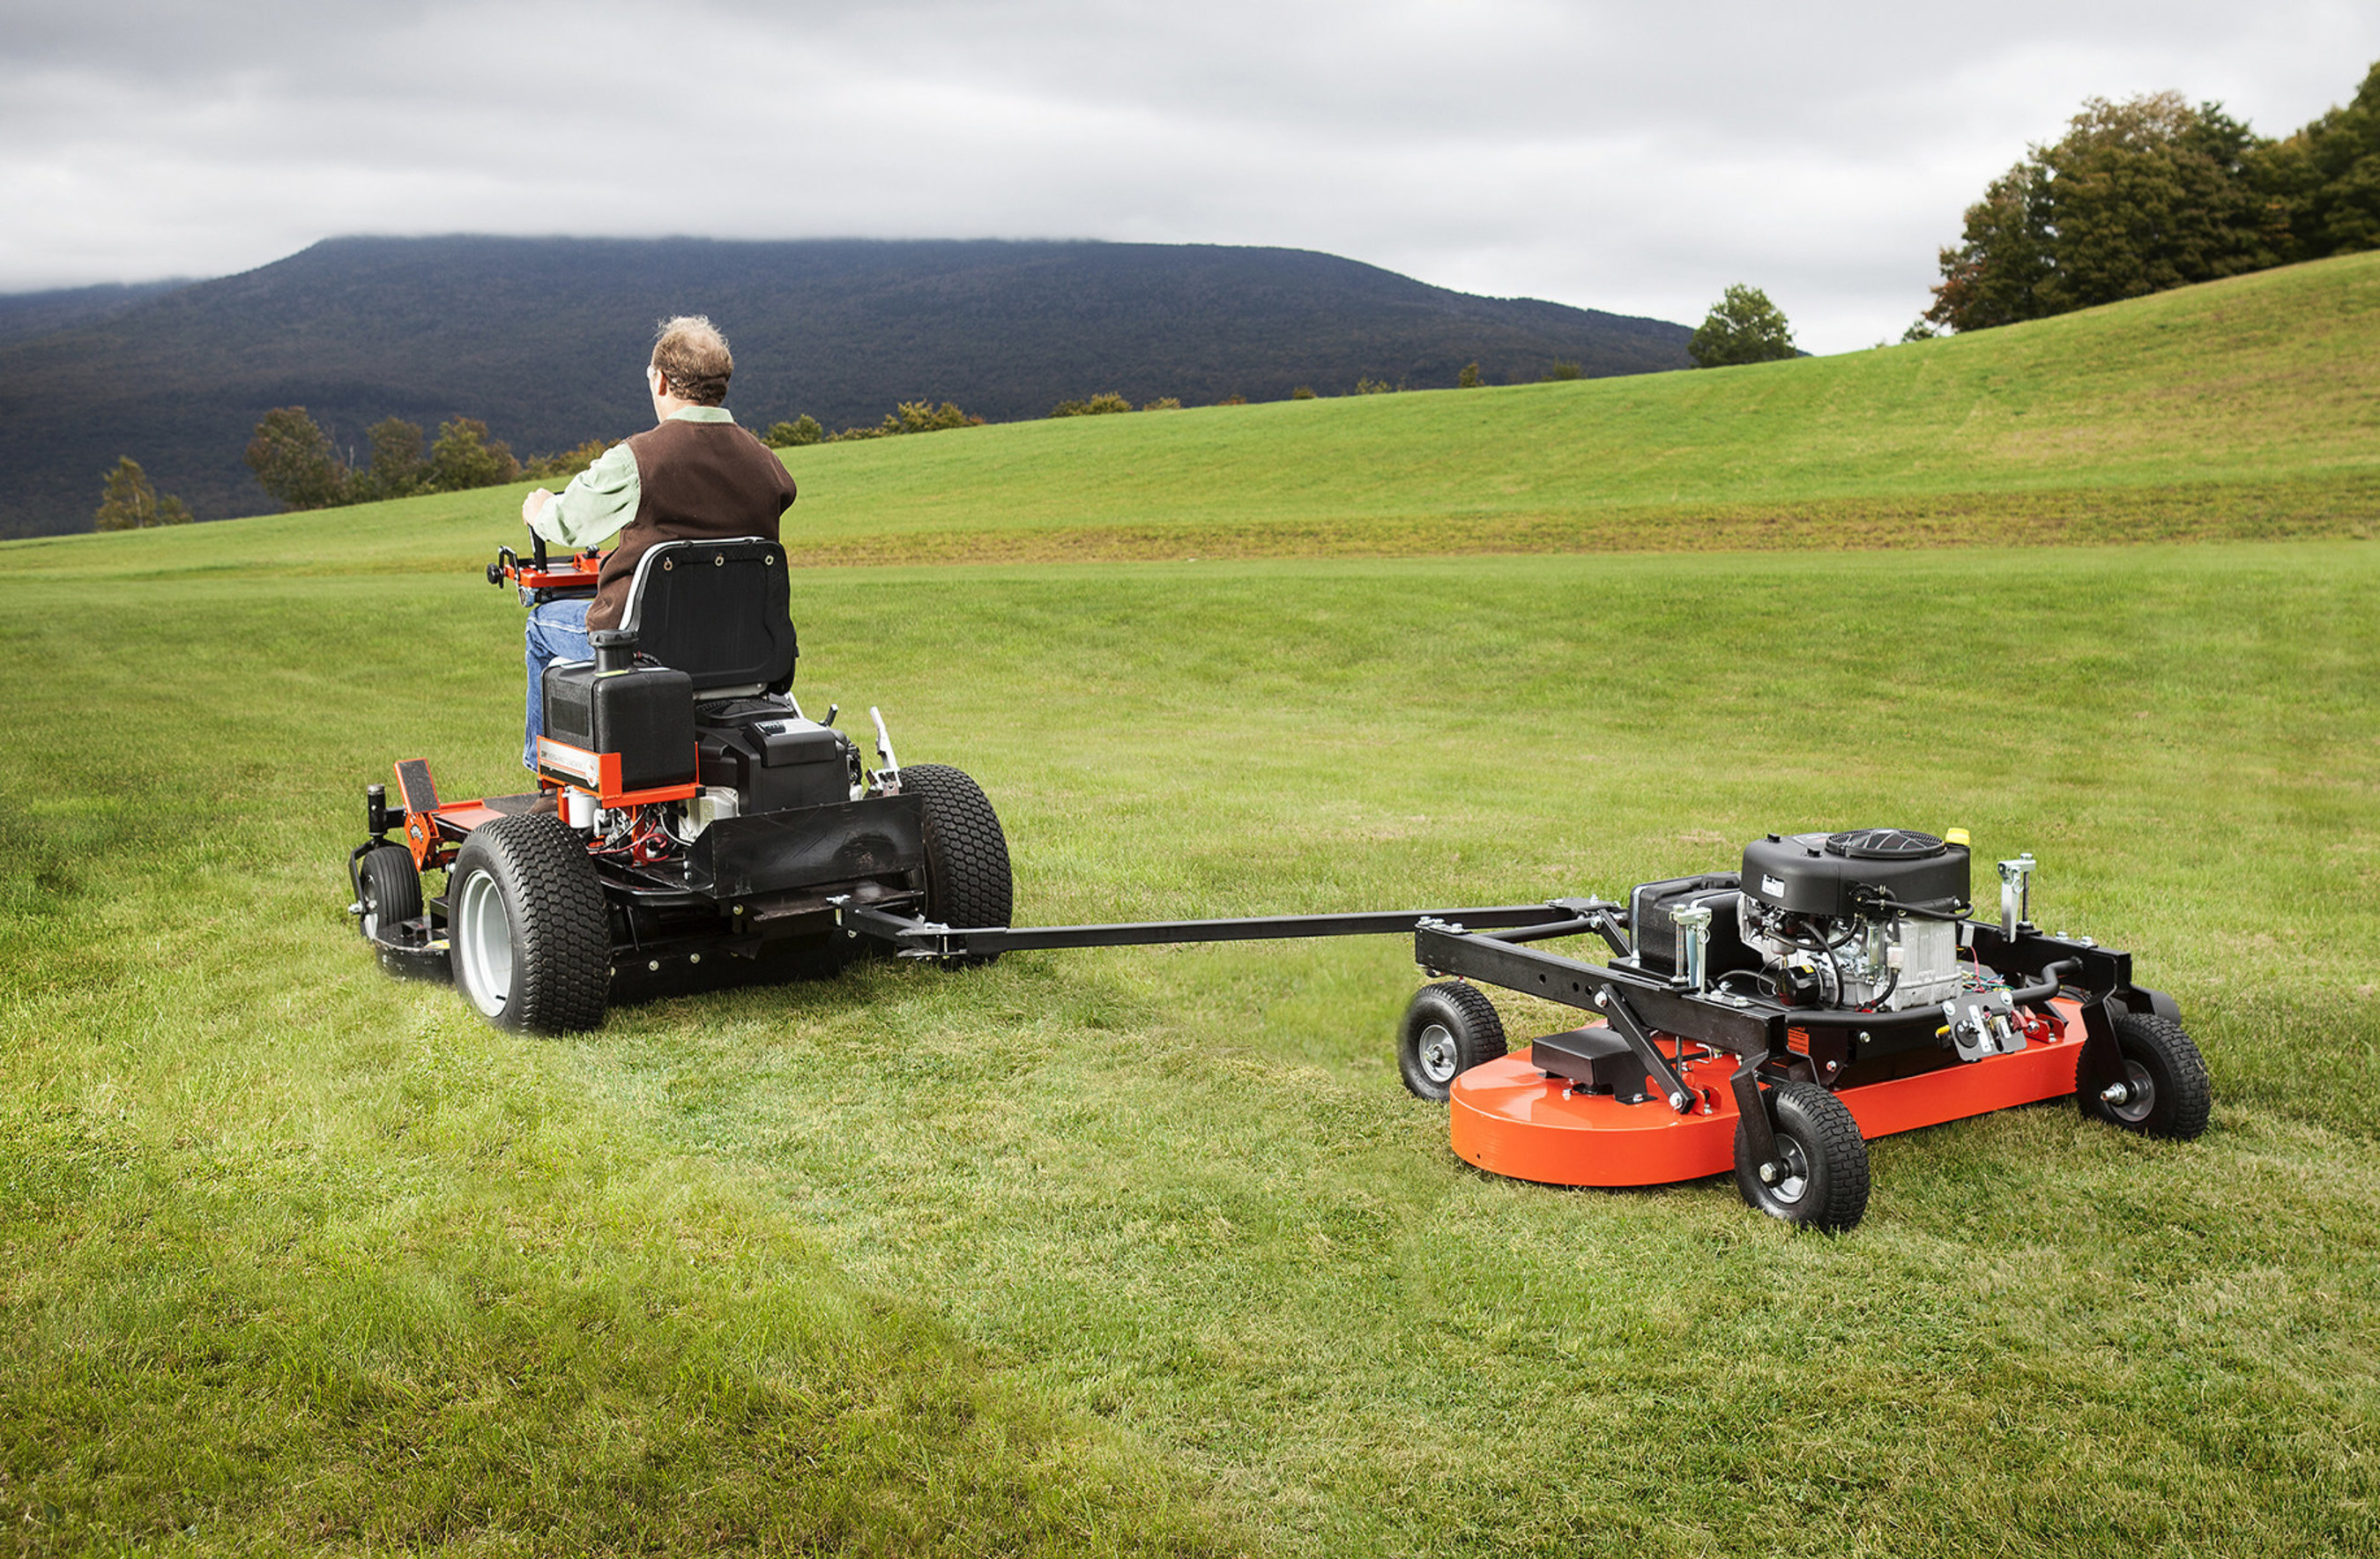 DR® Power Equipment Introduces All-New 2016 DR Field and